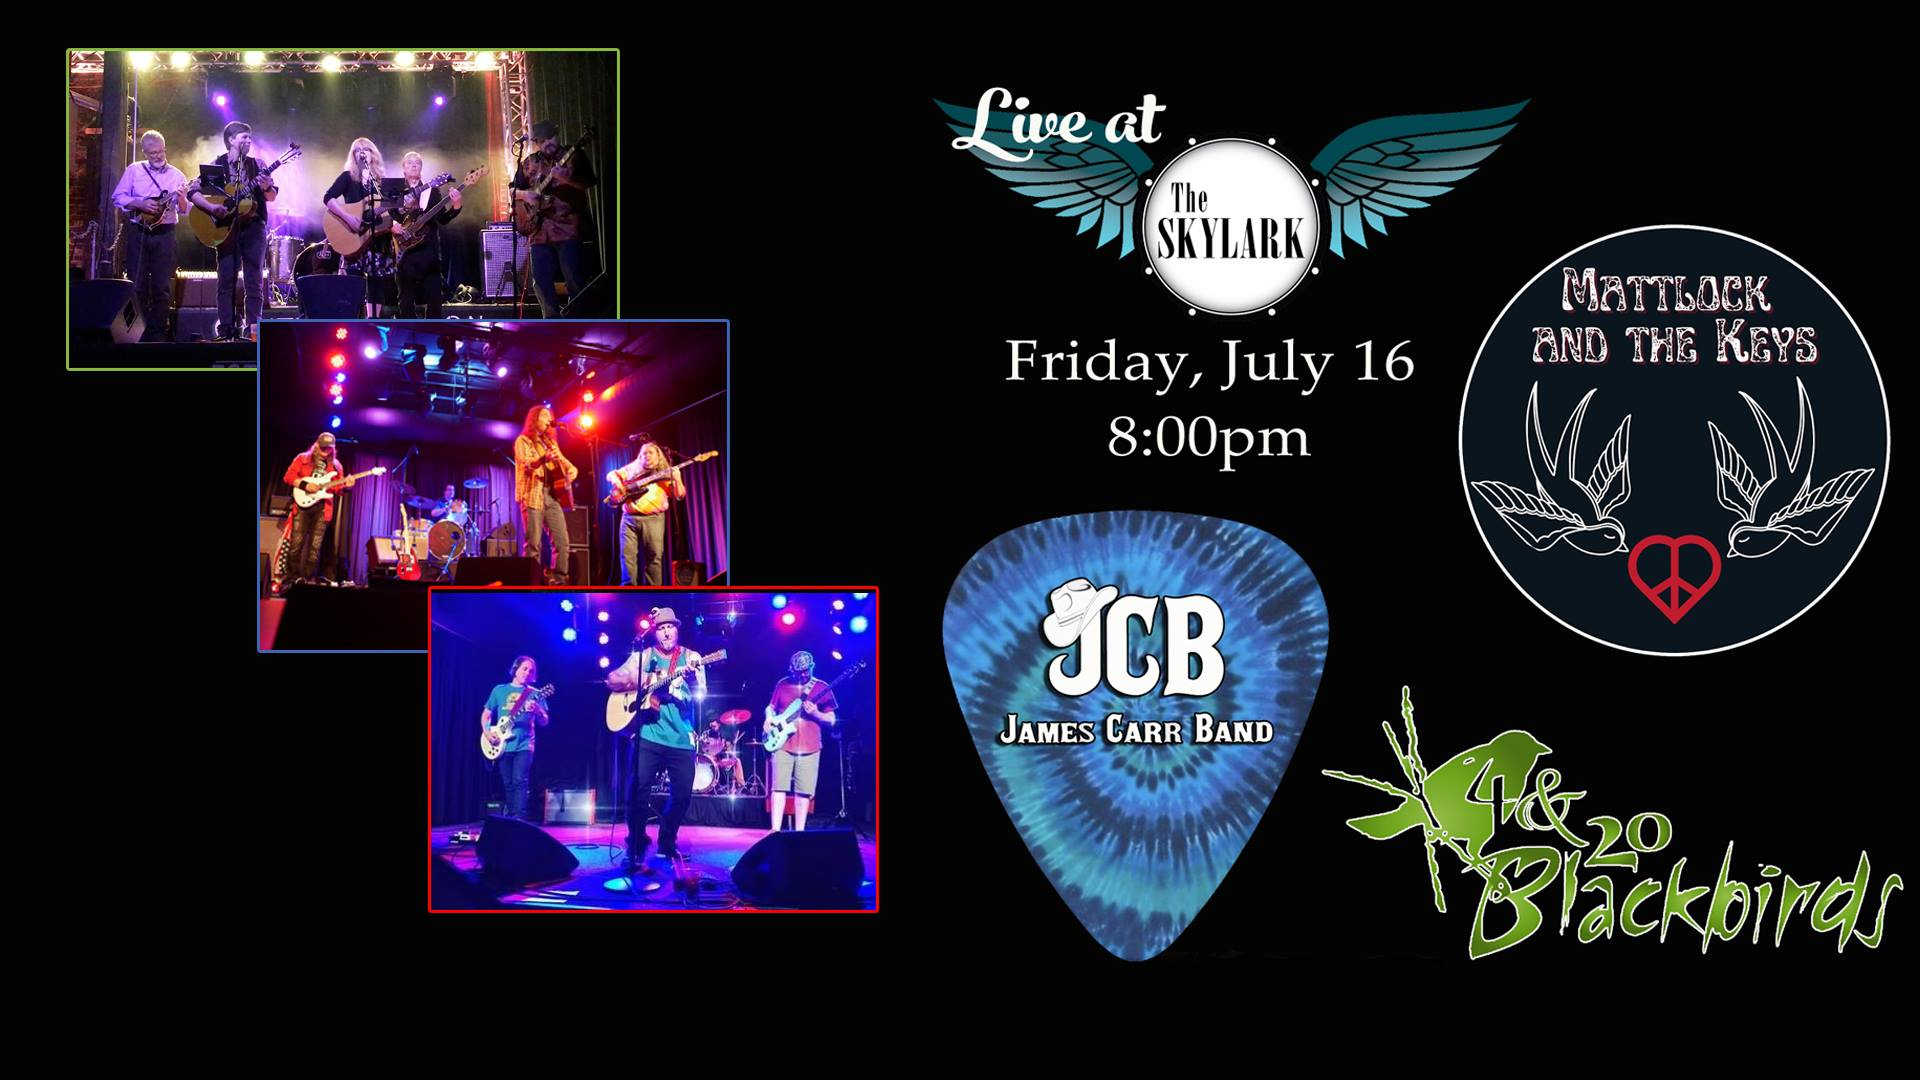 We are happy to offer this FREE show to welcome back live music to The Skylark. A great night of Blues, Rock, and more! We are all ages till 10pm and have food and drinks all night!